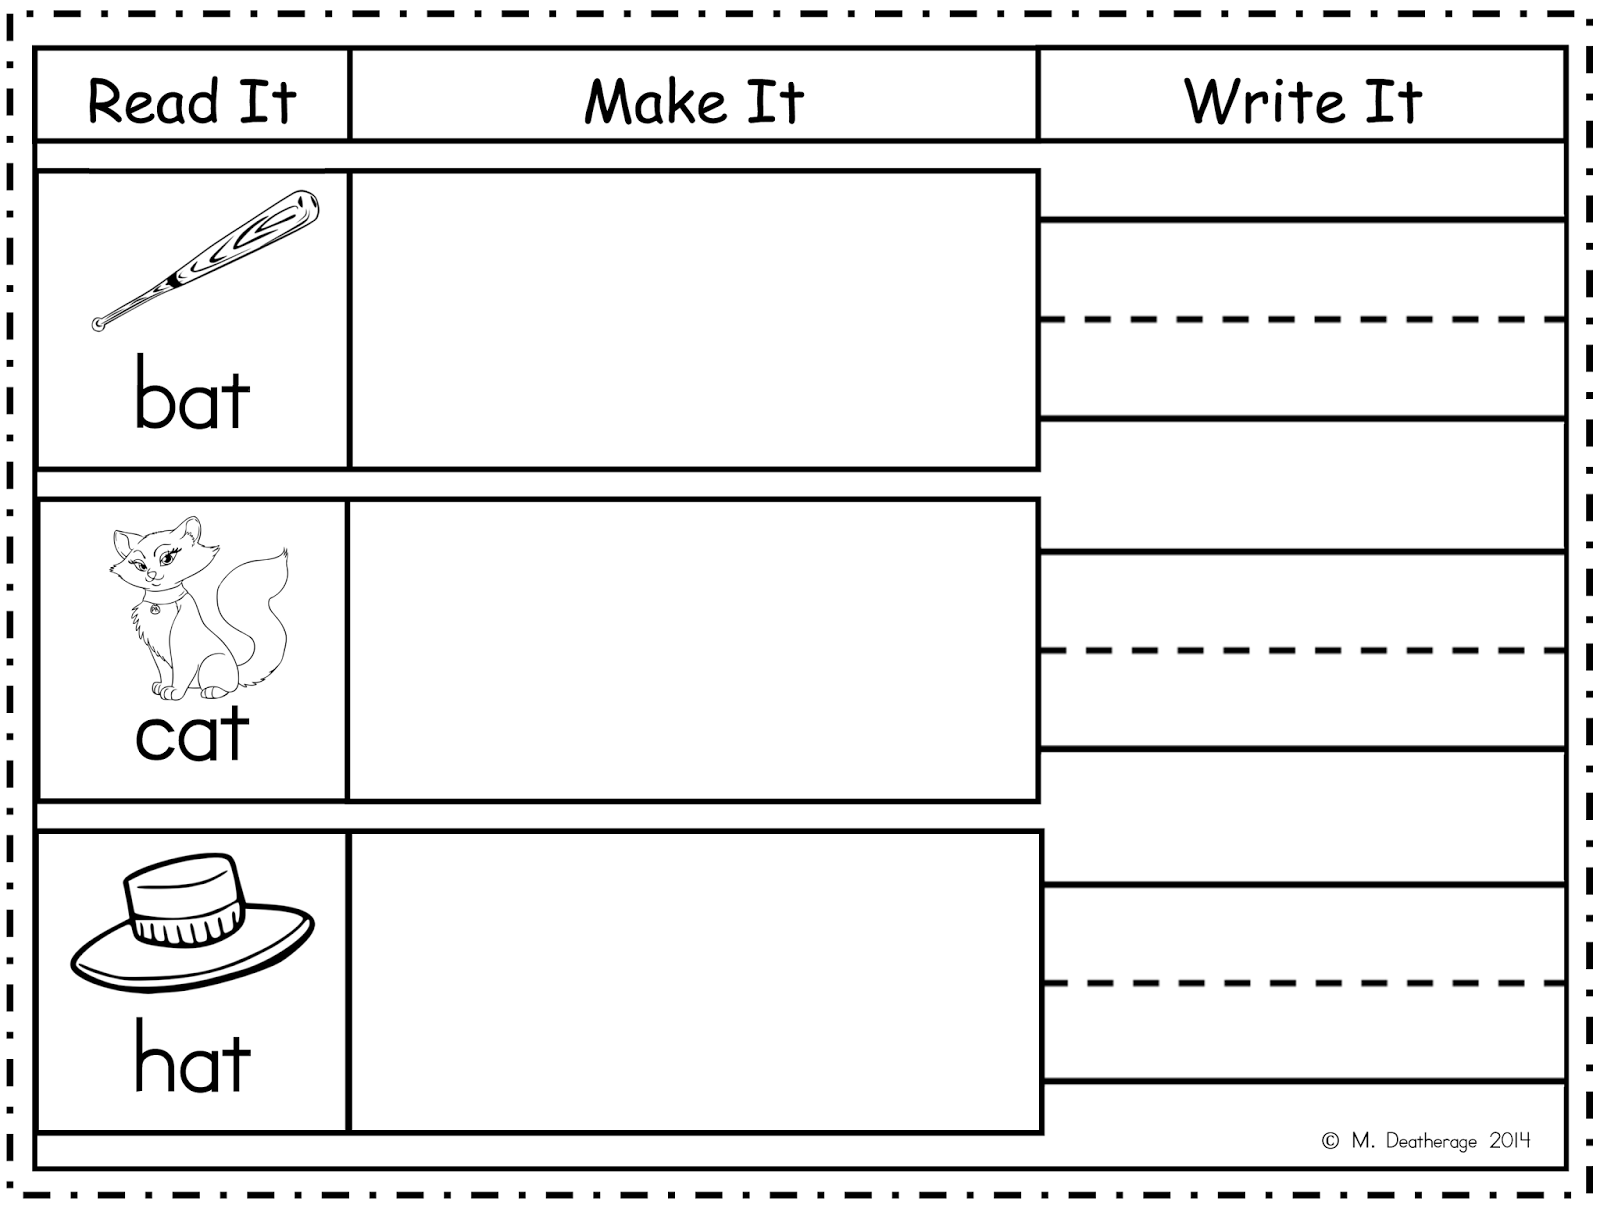 http://www.teacherspayteachers.com/Product/Word-Work-Center-Read-Make-Write-Short-A-1396254